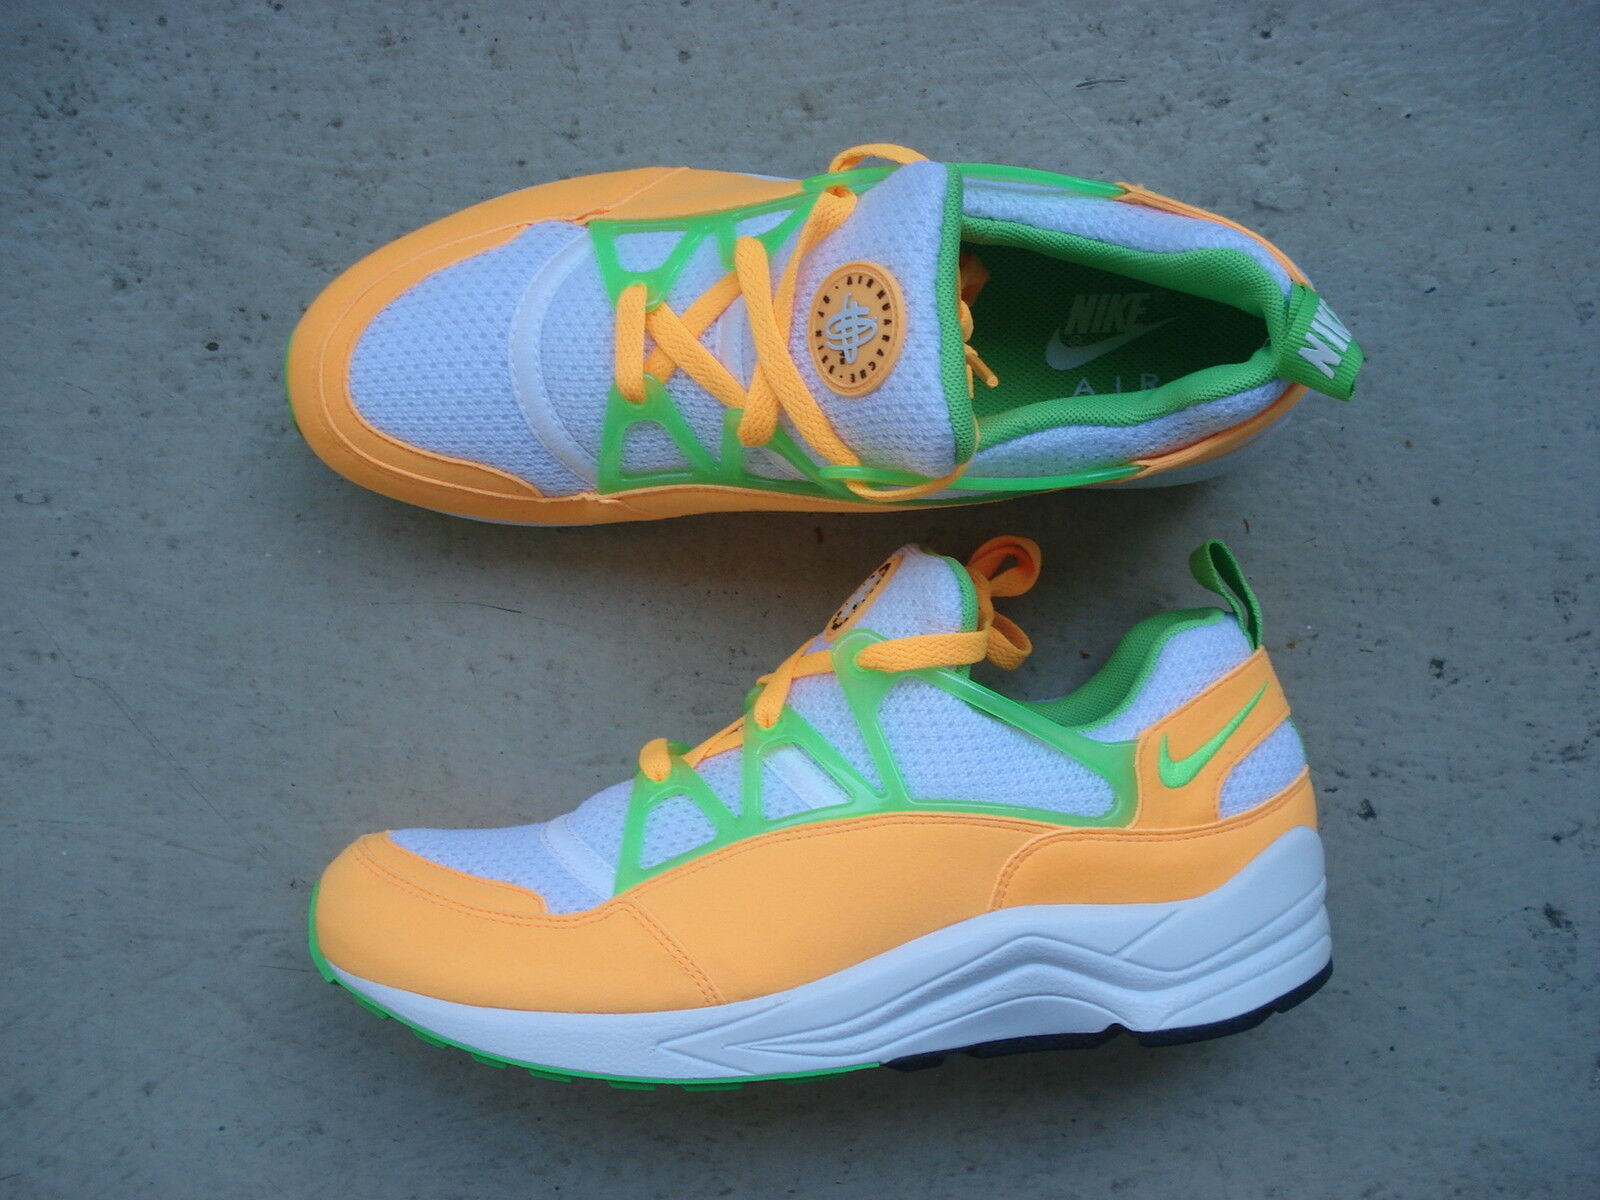 Nike Atomic Air Huarache Light 45.5 Atomic Nike Mango/Action Green-White 17a963